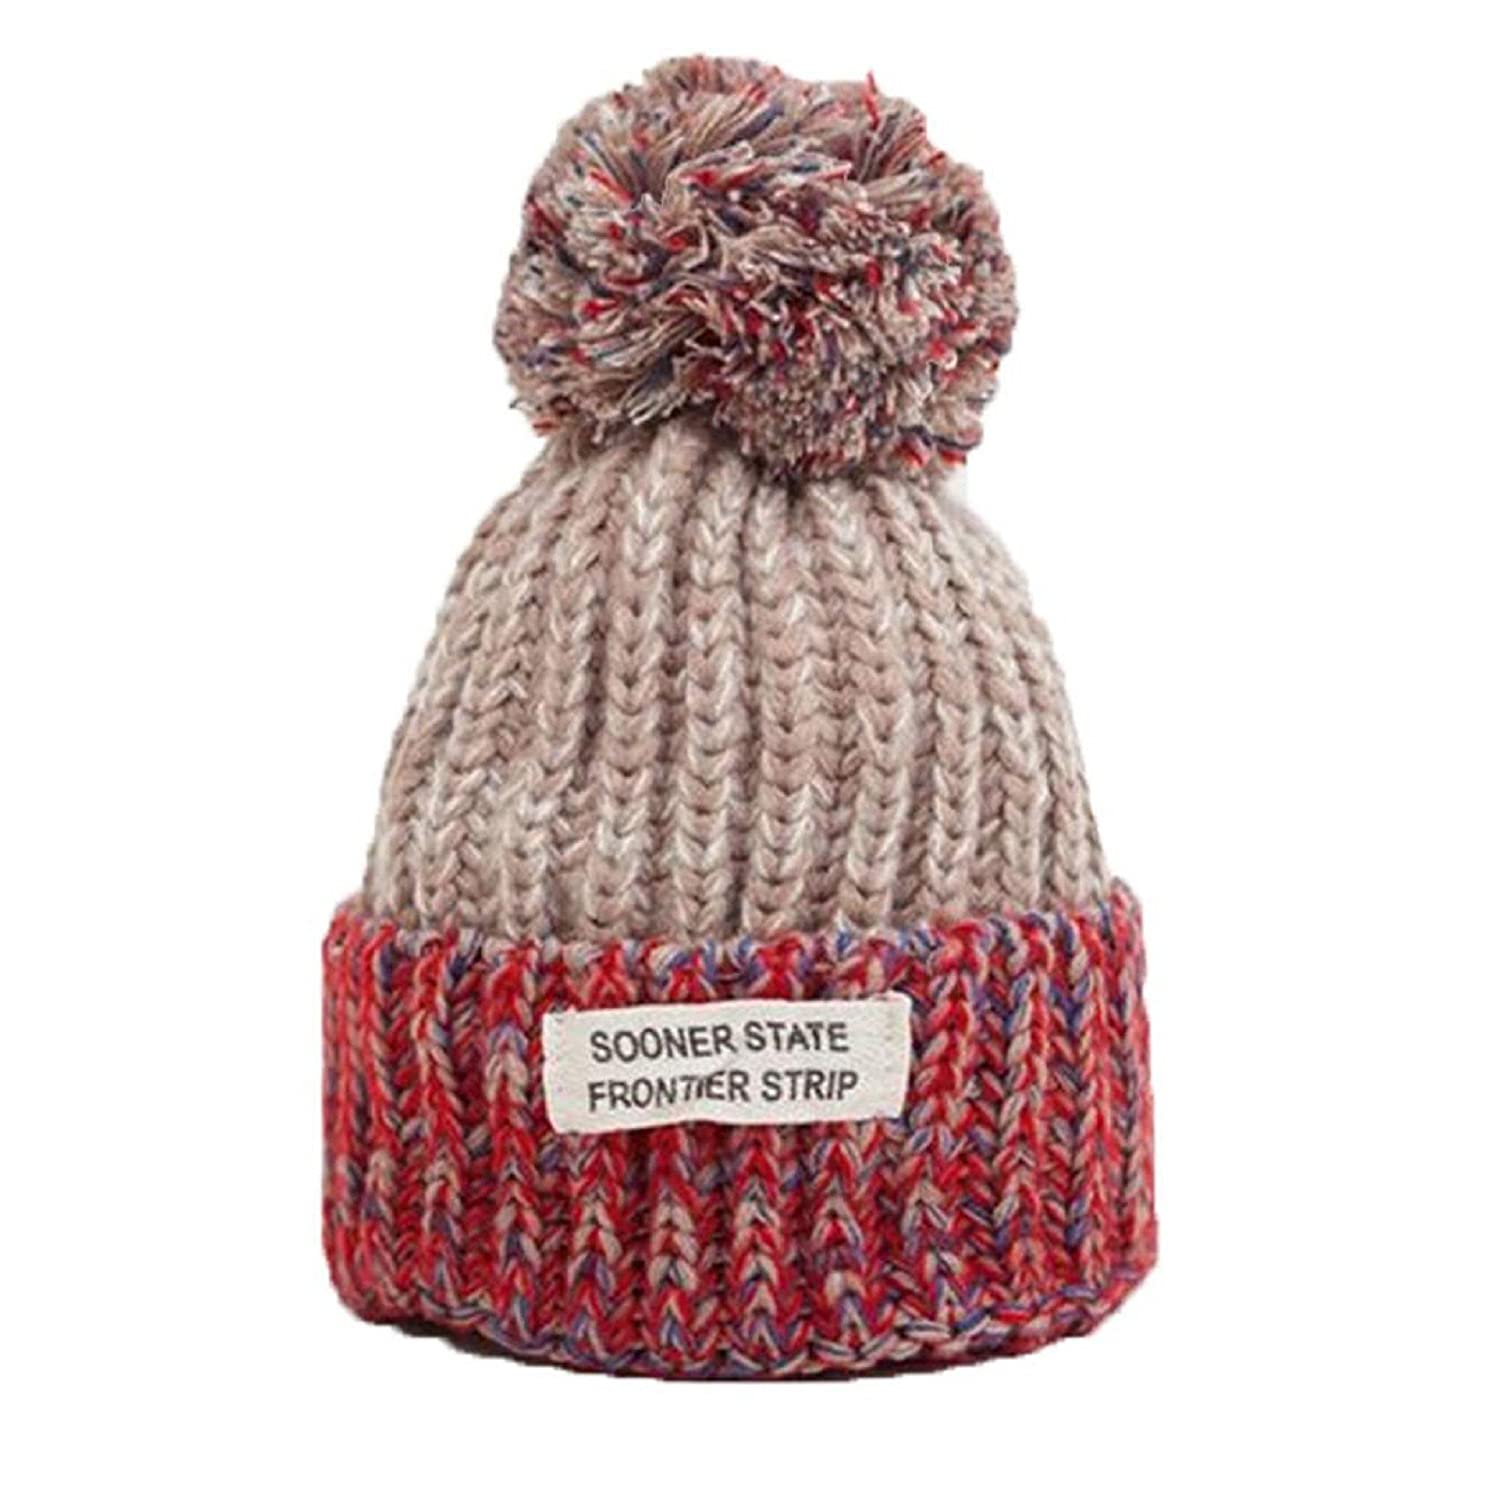 Amazon.com  Owill Women Men Winter Hat Ball Top Thick Hat Sooner State  Frontier Strip Printing Knitted Beanies Cap (Beige)  Clothing b9b71cb2184